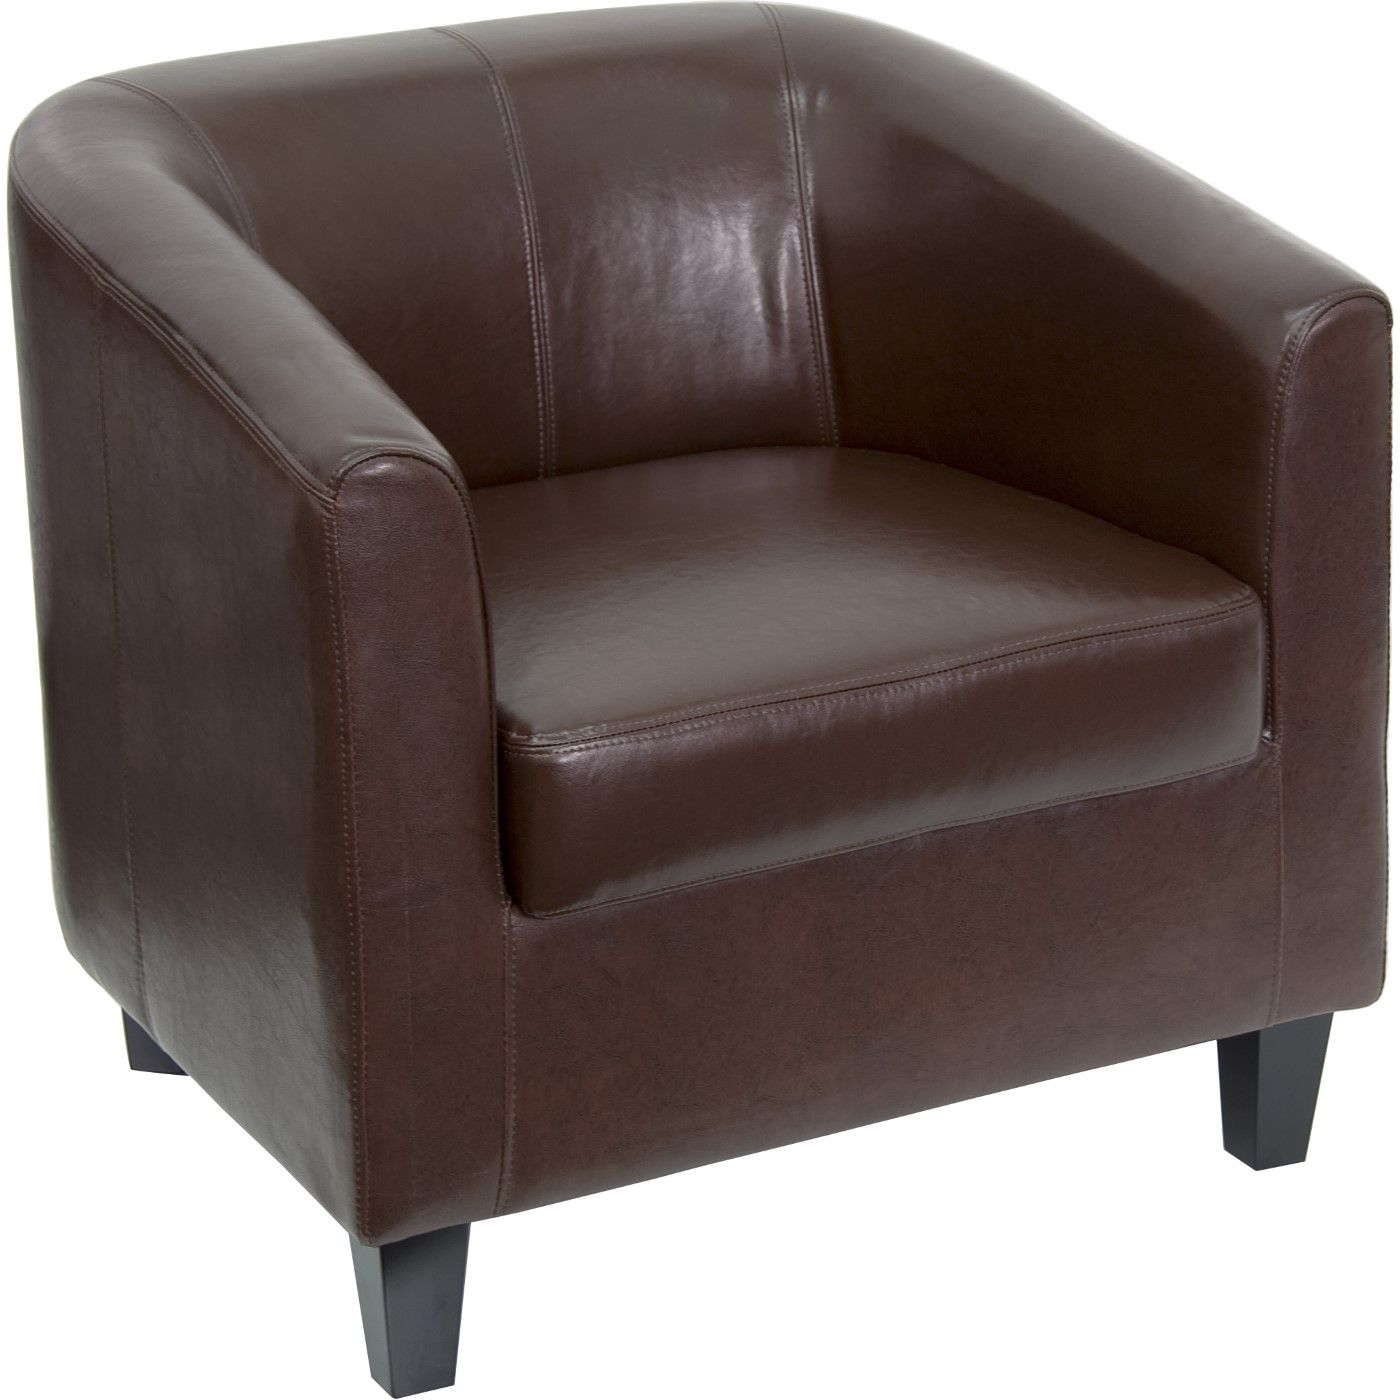 Brown LeatherSoft Lounge Chair